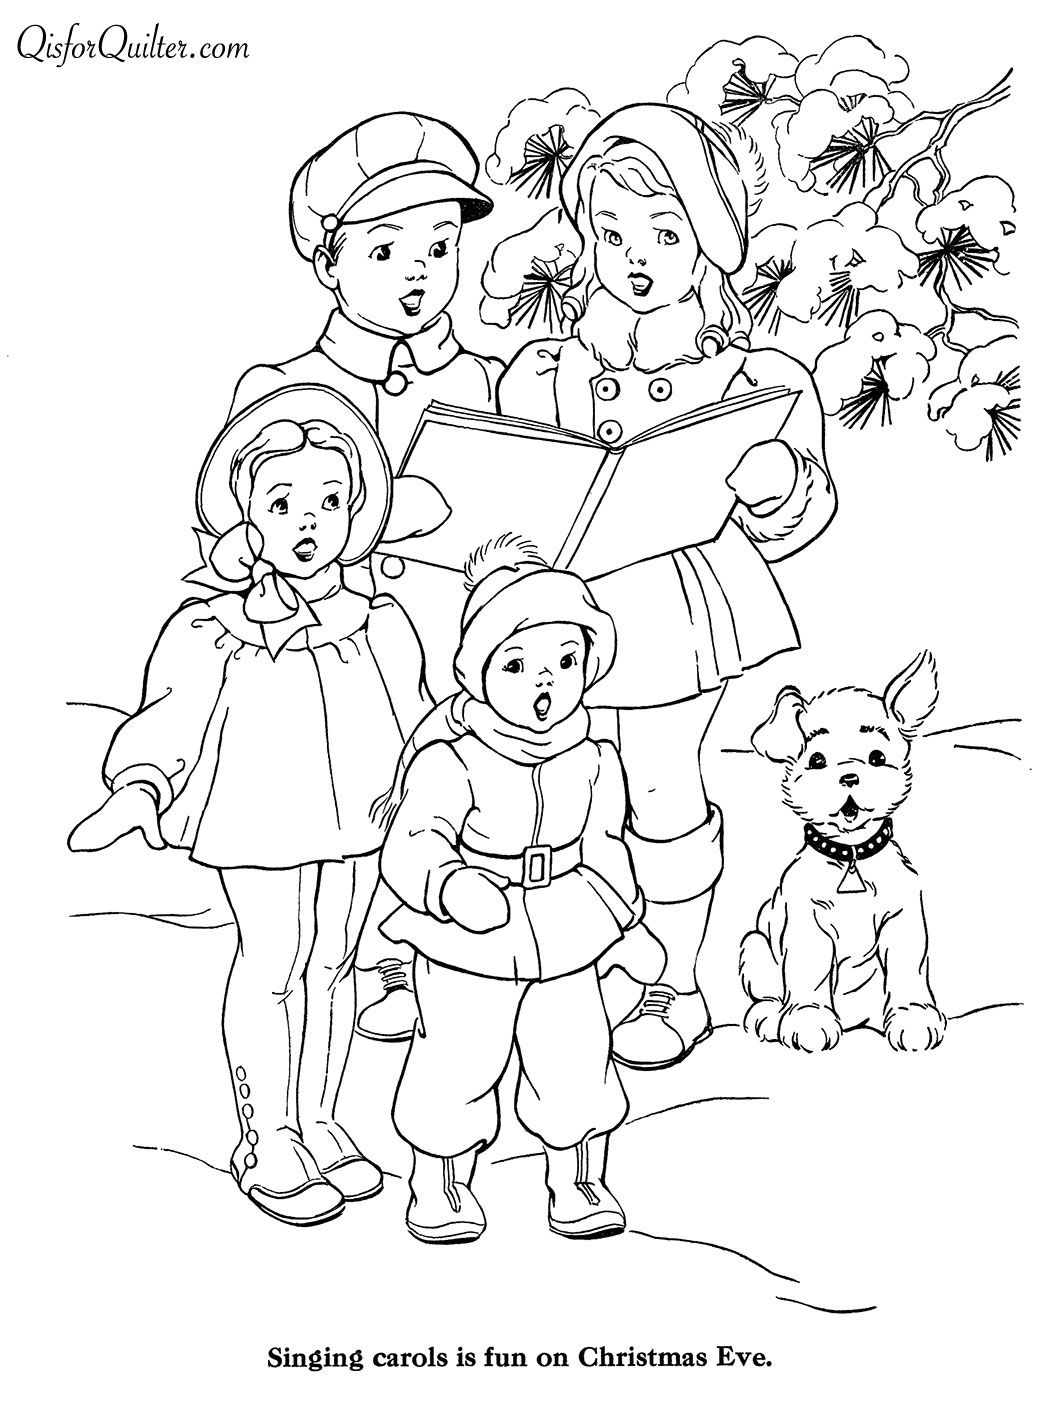 free printable coloring pages for older kids printable halloween coloring pages printable halloween for free pages kids coloring older printable